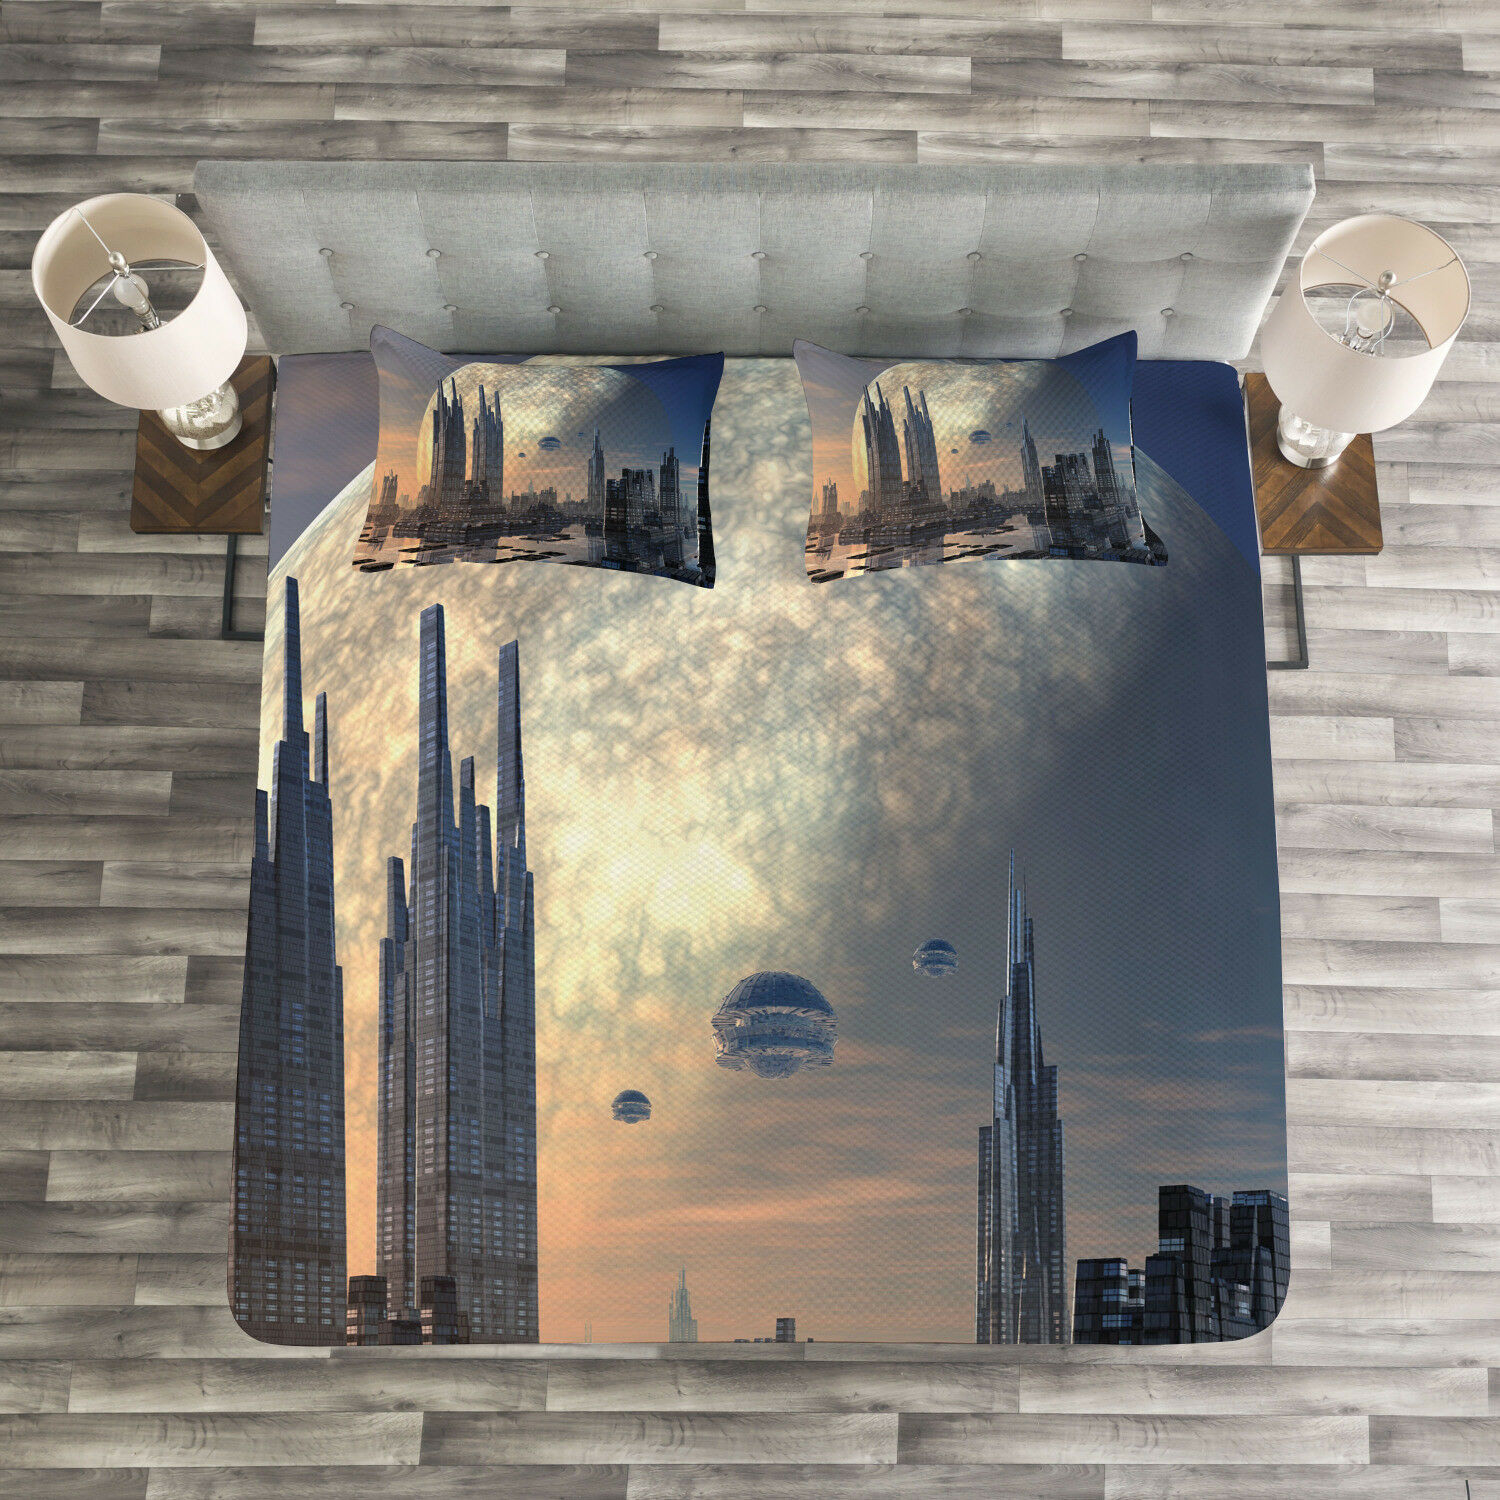 City Quilted Bedspread & Pillow Shams Set, Spacecraft in Formation Print